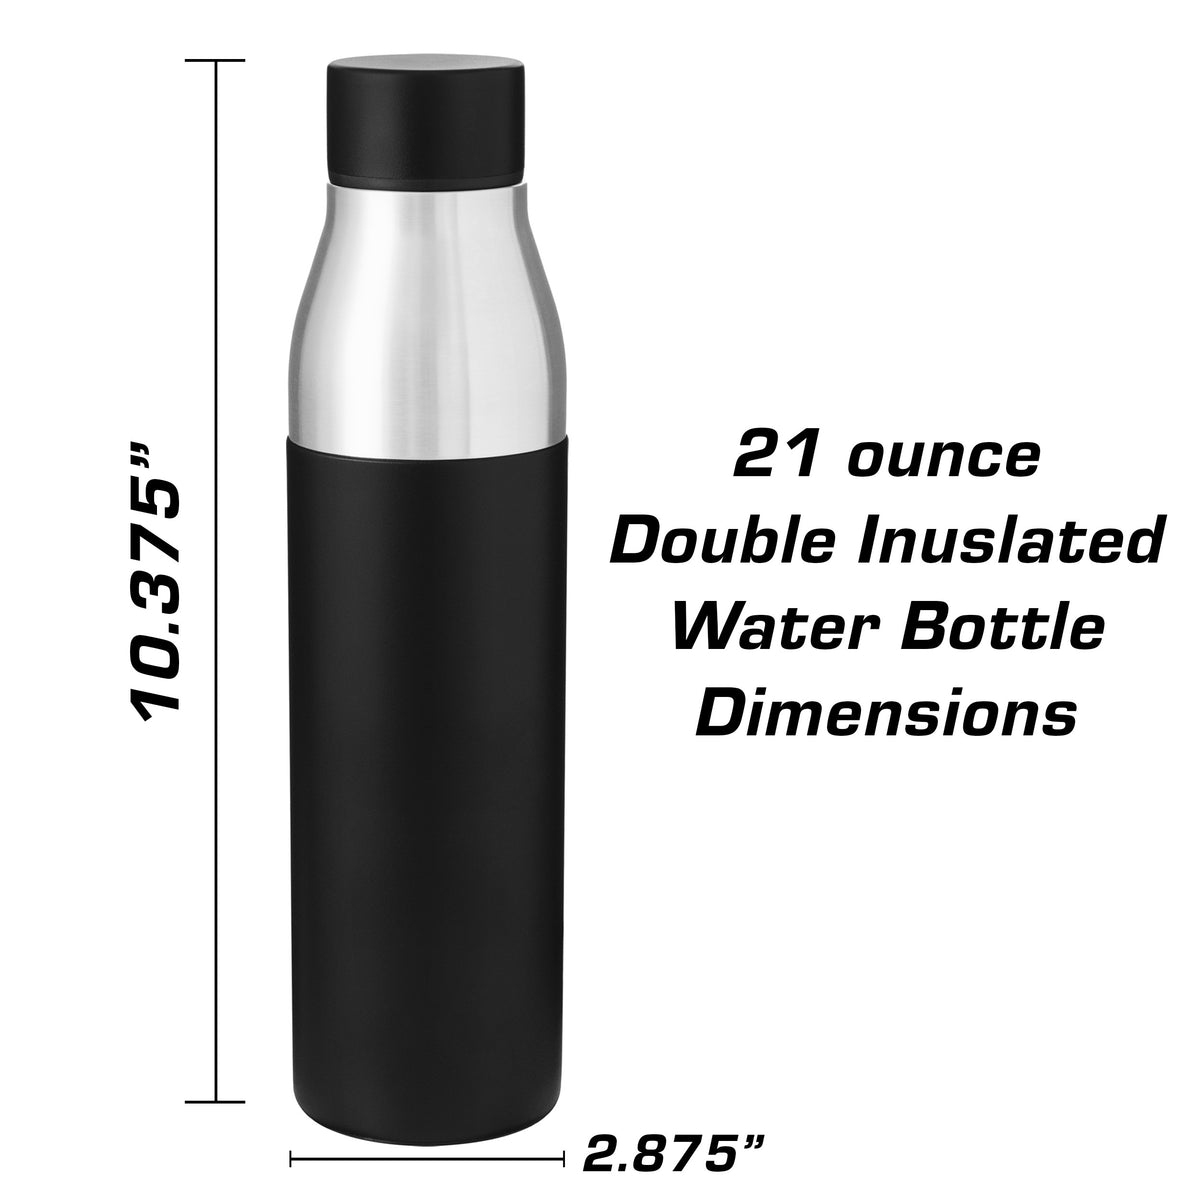 Lamborghini Huracan Insulated Stainless Steel Water Bottle - 21 oz